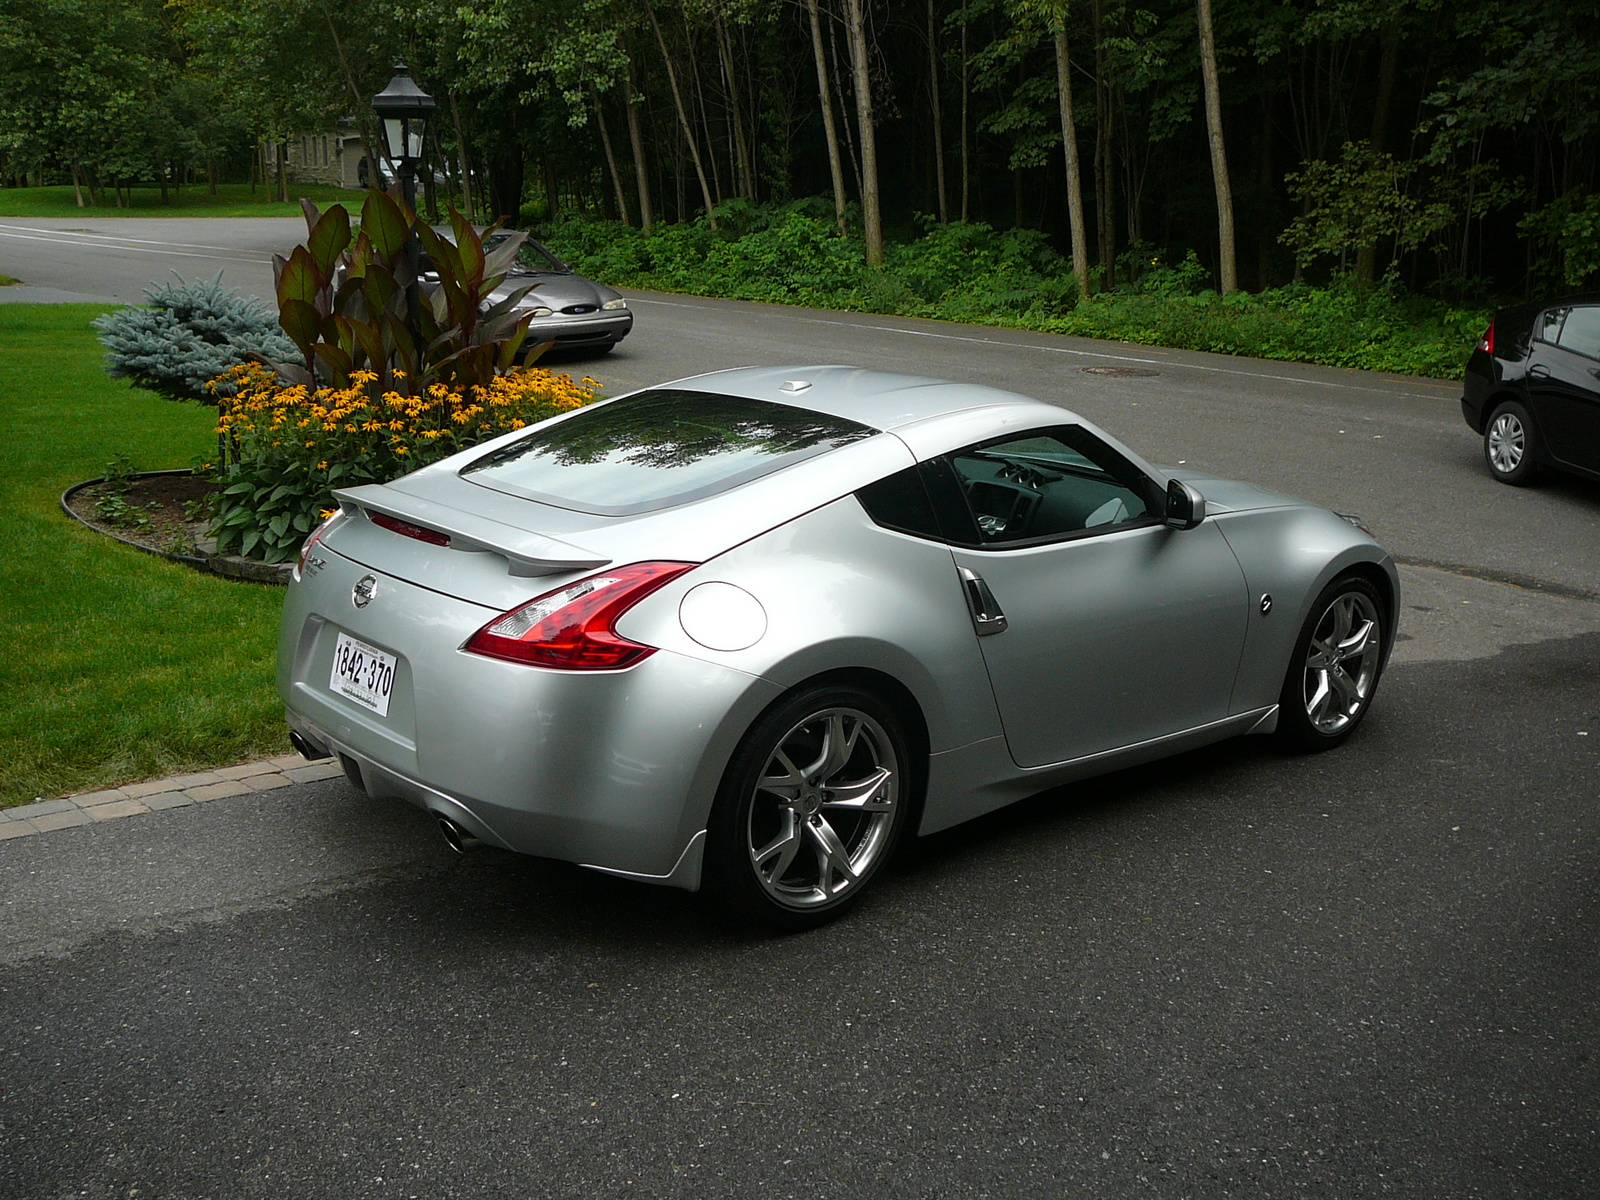 I would not have bought yours because 1 it's red 2 it doesn't have sport package and 3 it doesn't have Navi, but there are people looking for cheap 370Z :P